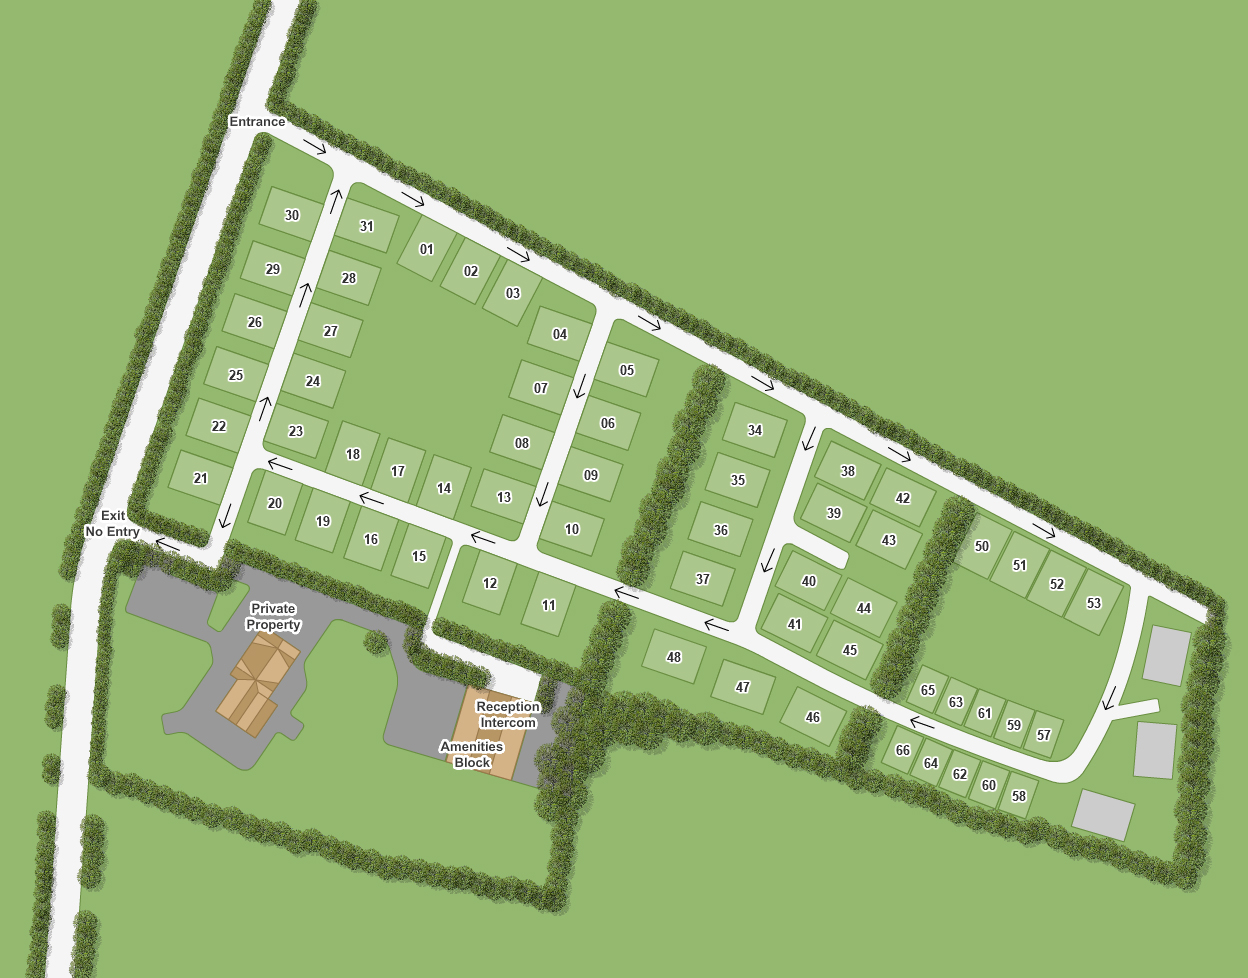 site-map-with-road-directions-new-pitches.jpg